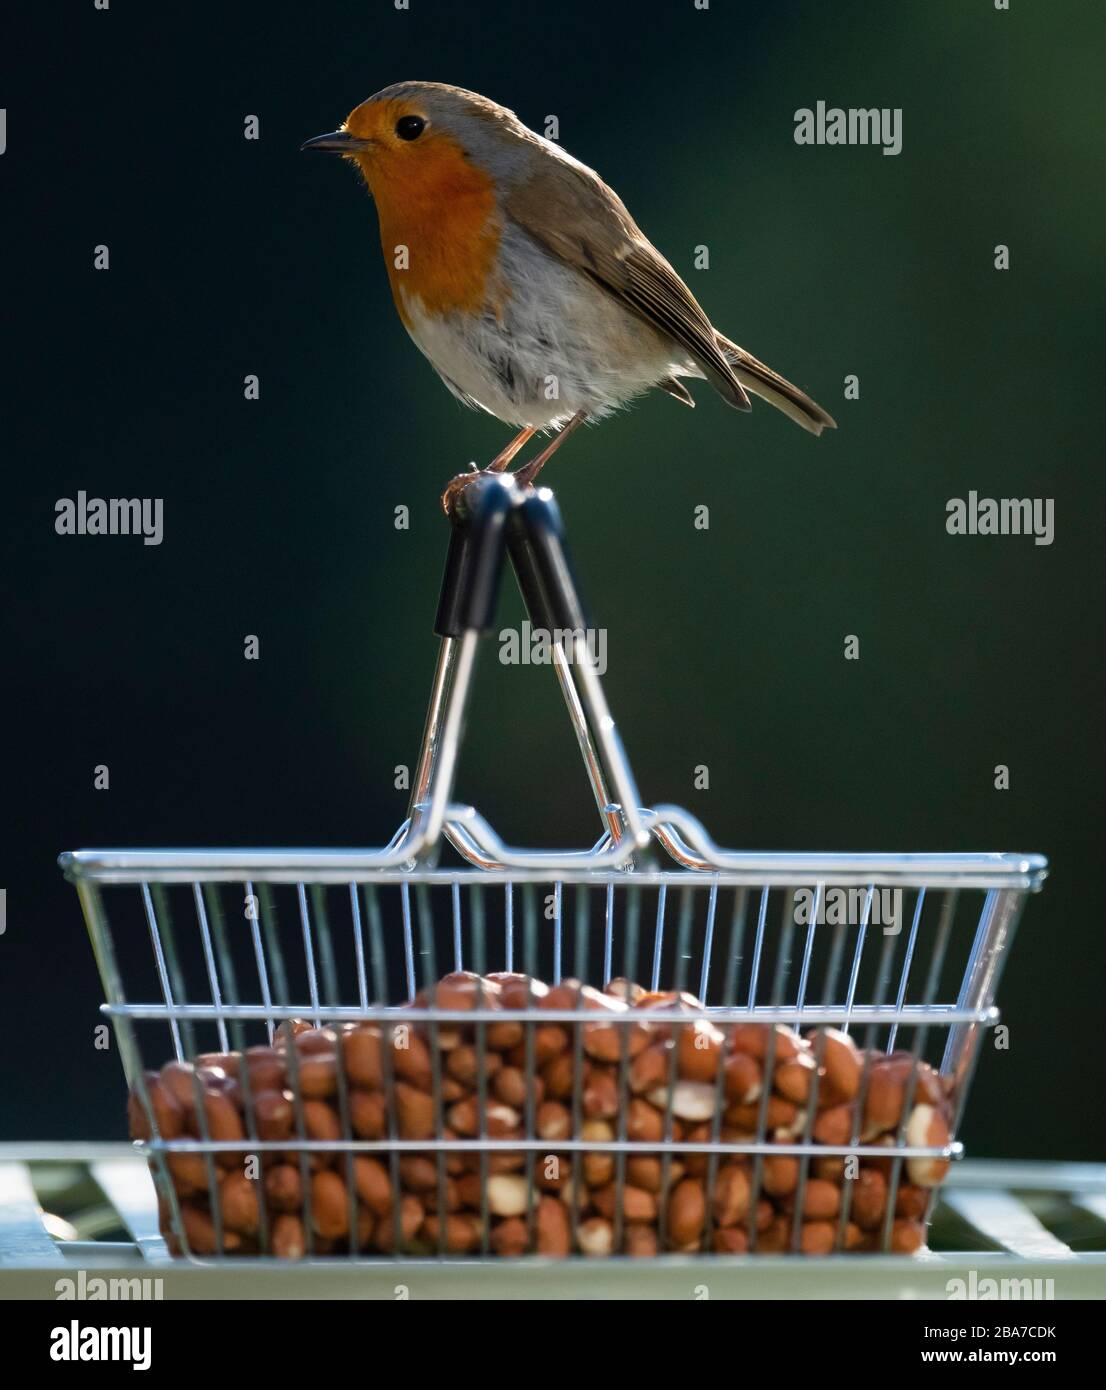 London, UK. 26th March 2020. Early morning Robin feeds from a peanut filled shopping basket in a suburban garden. Credit: Malcolm Park/Alamy Live News. Stock Photo